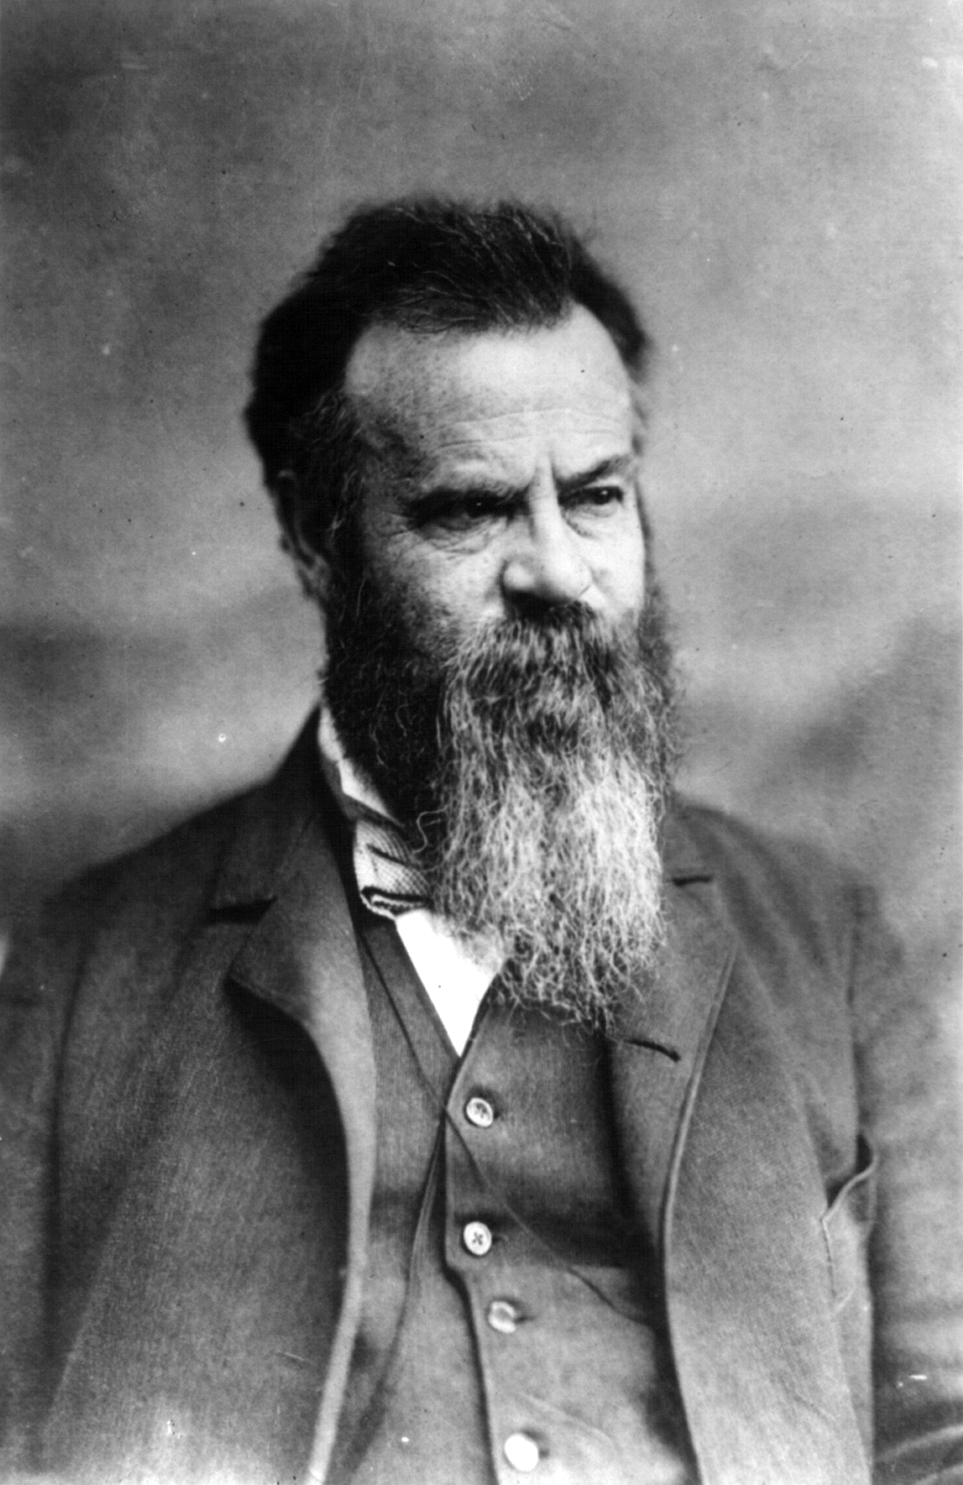 Image of John Wesley Powell from Wikidata